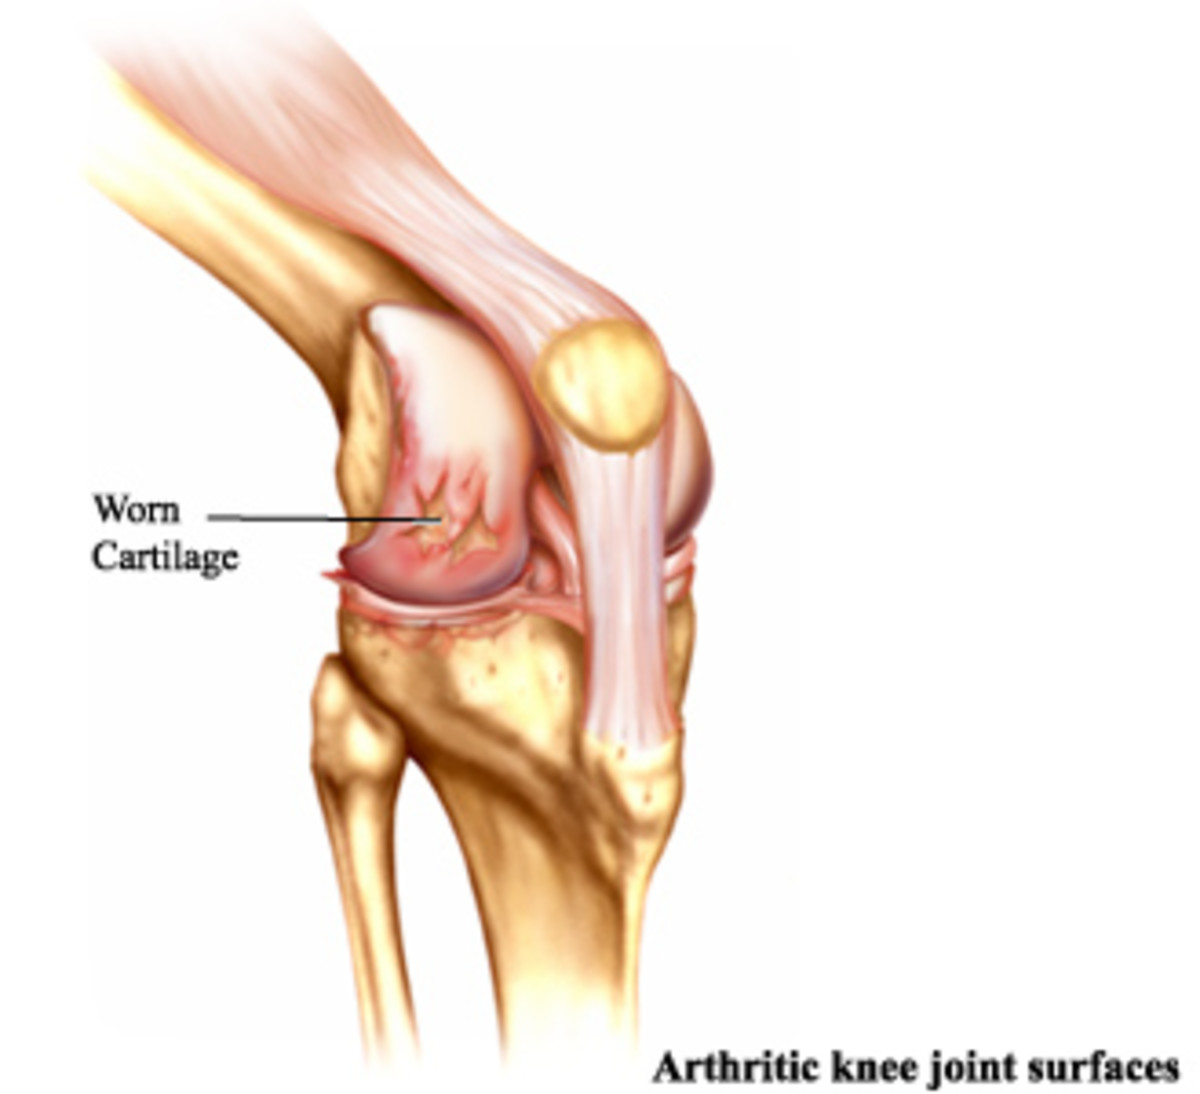 Osteoarthritis or degenerative joint disease is the chronic breakdown of cartilage.